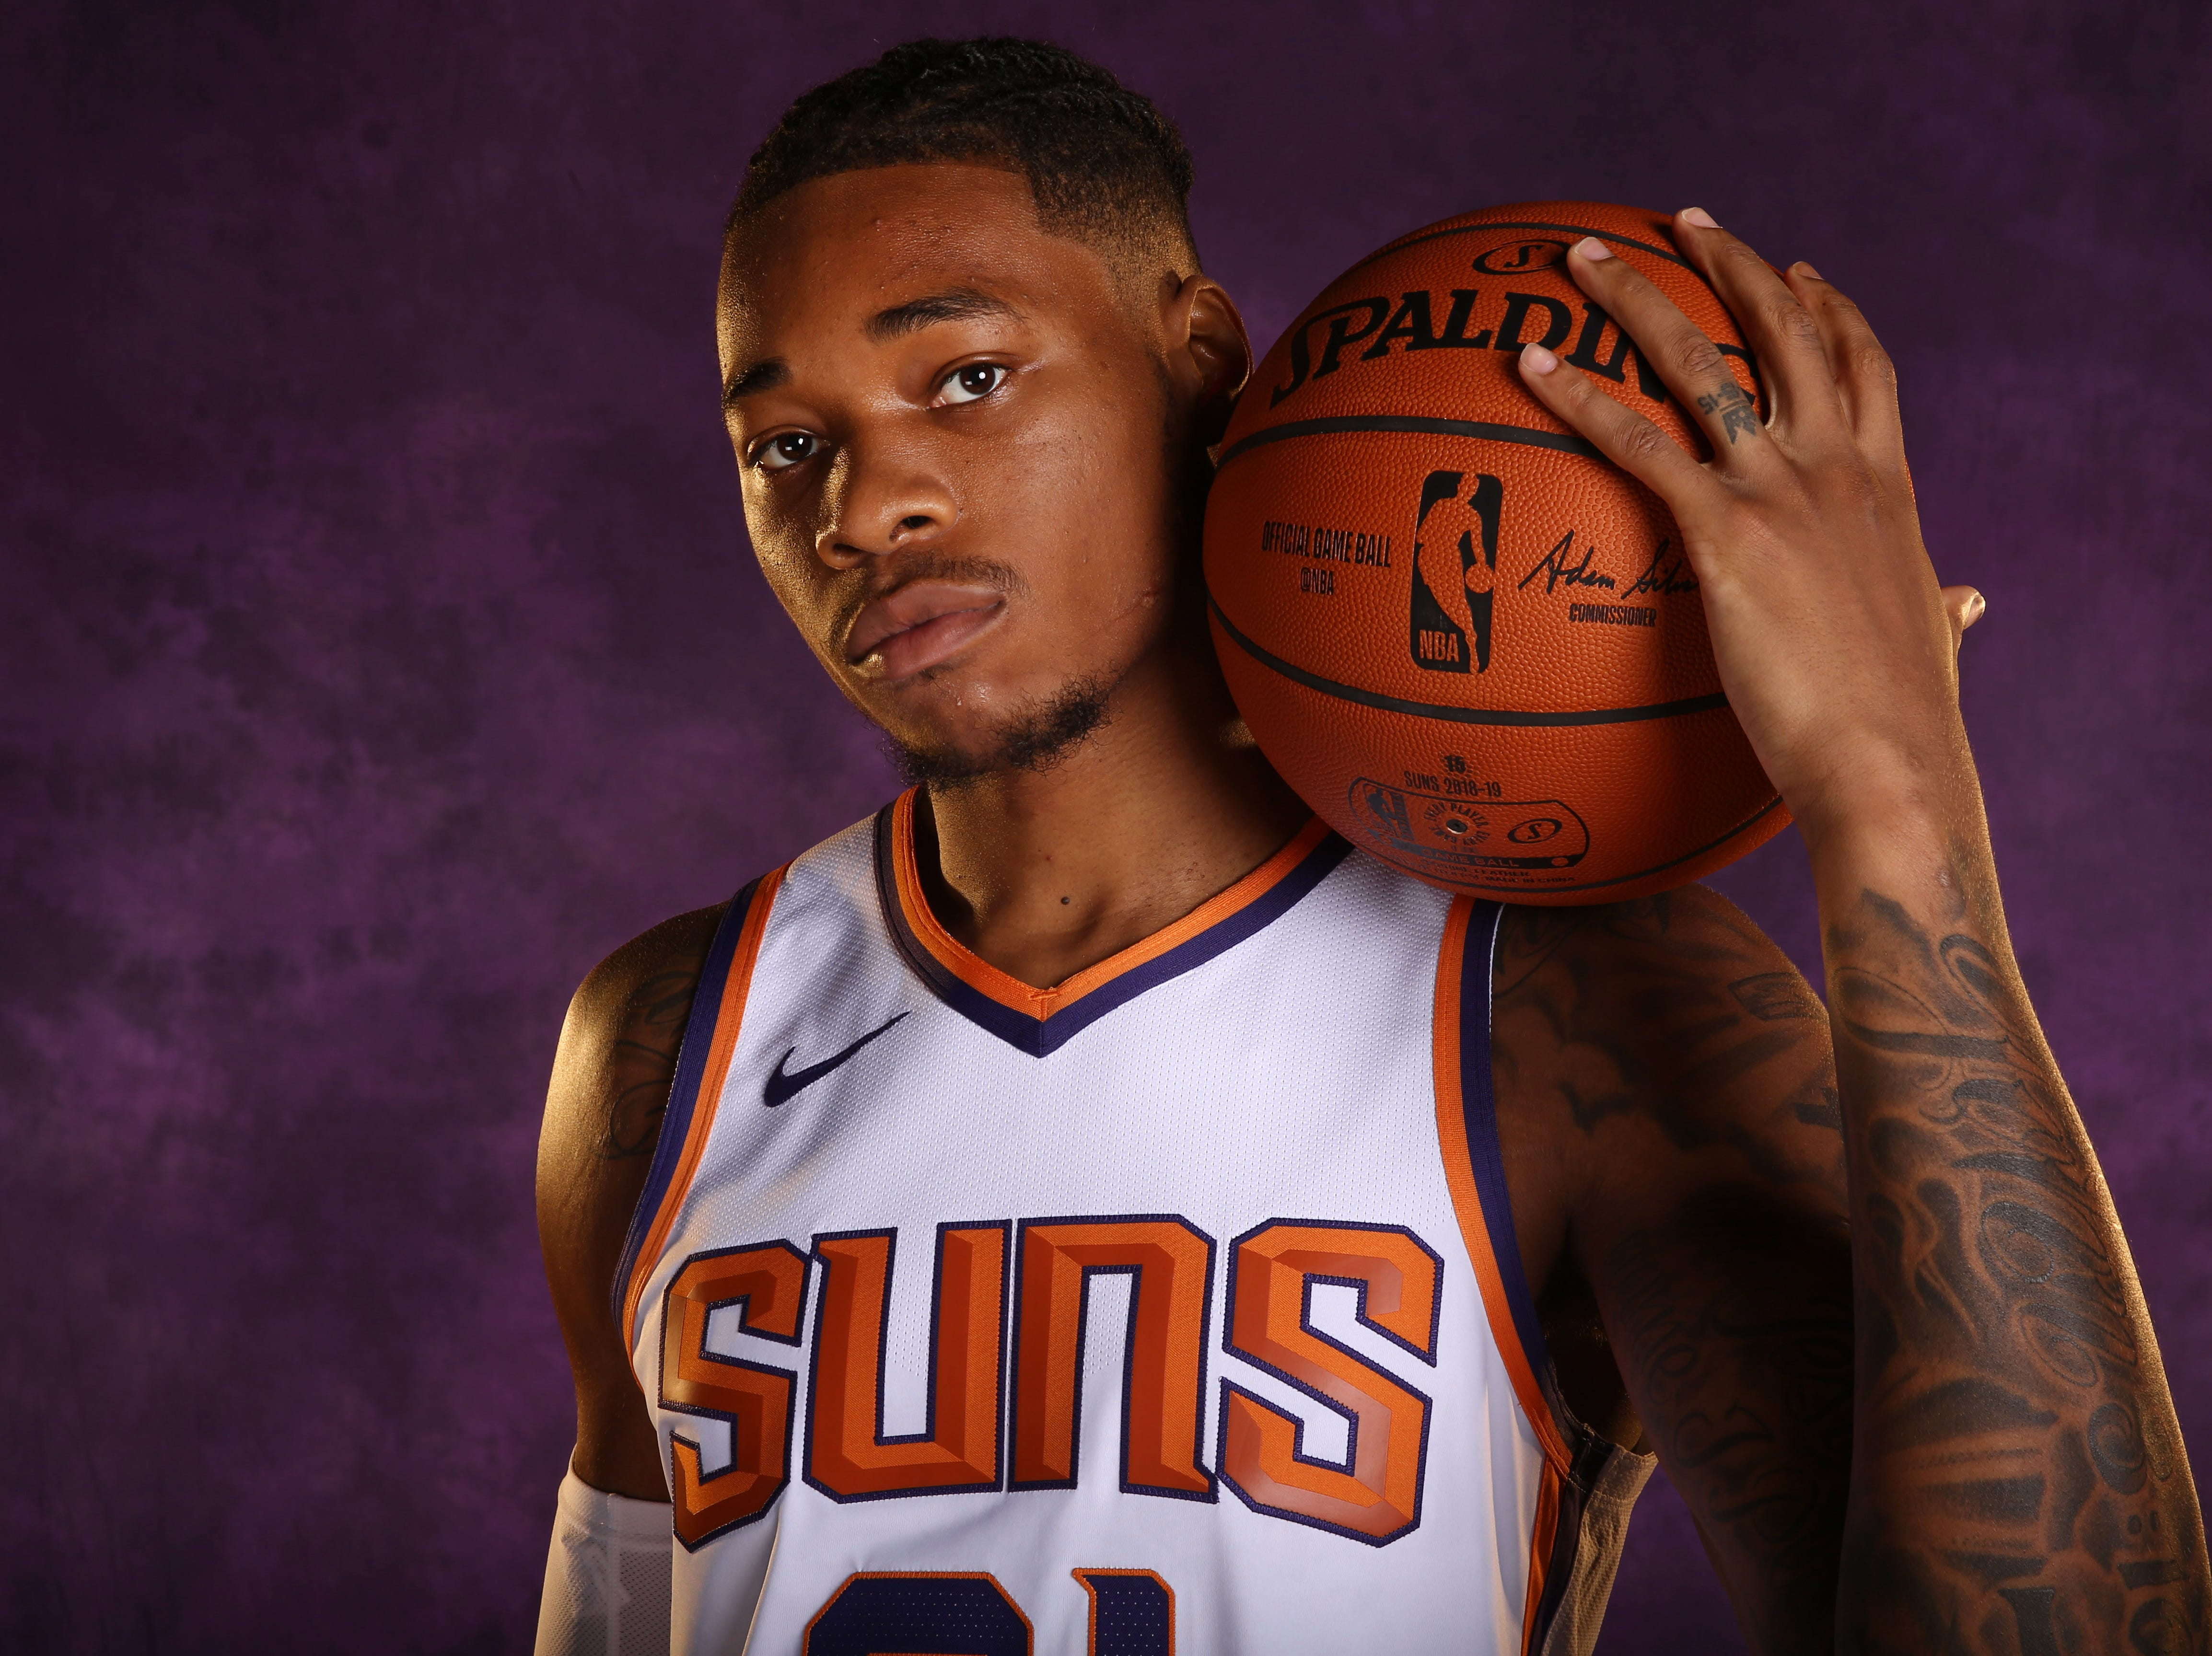 Richaun Holmes || Position: Forward || Height/Weight: 6-10, 235